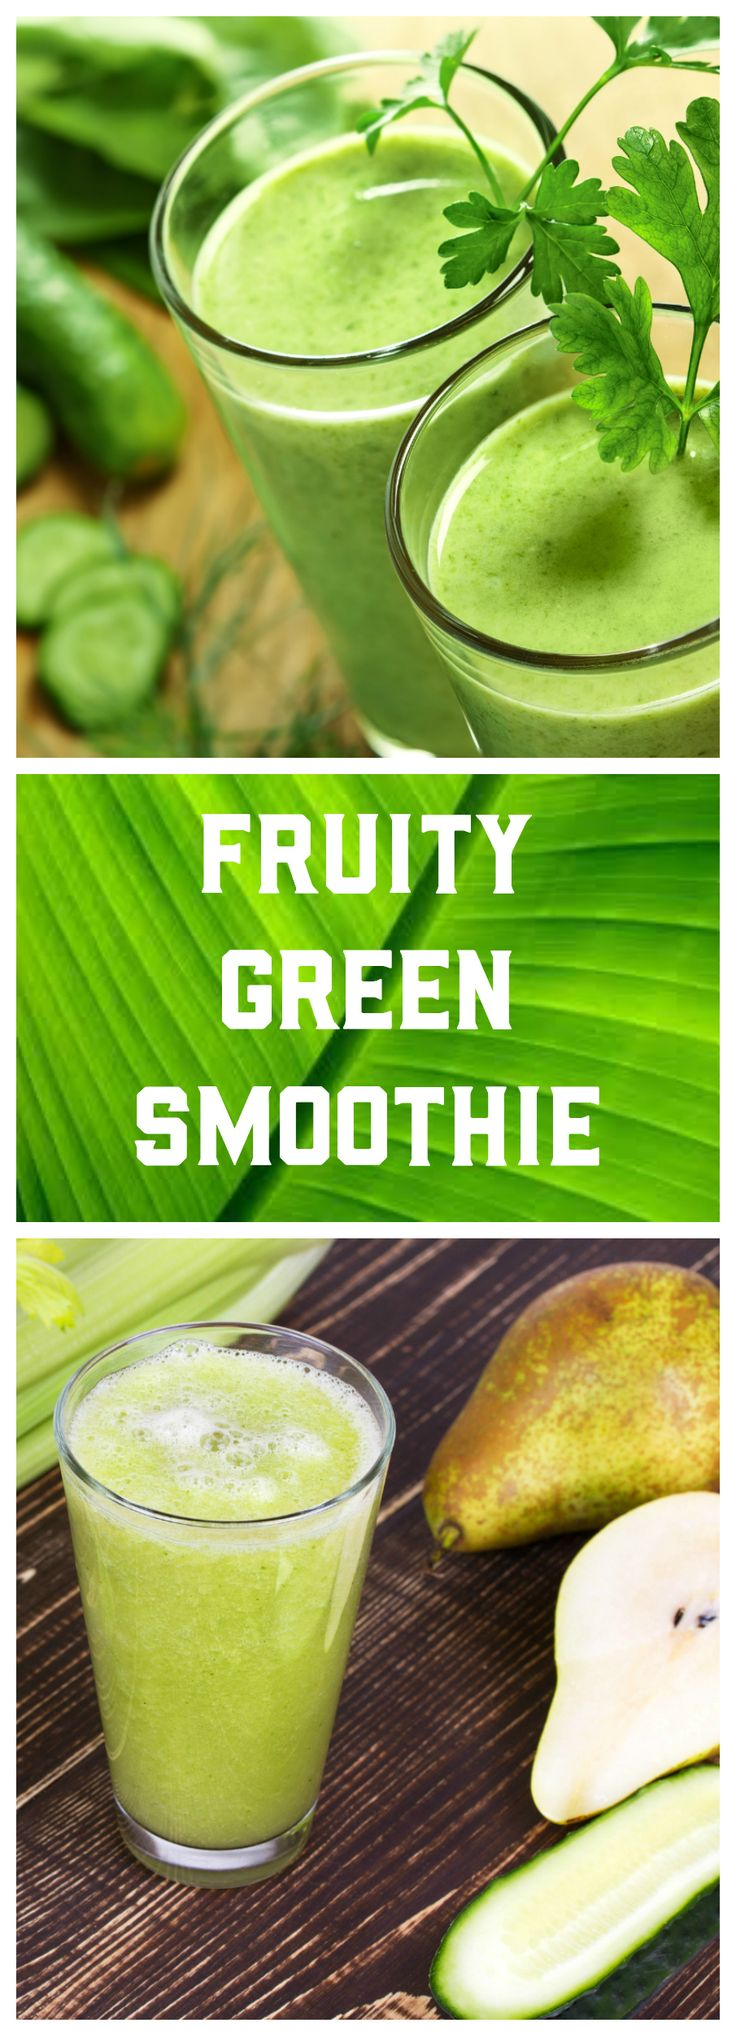 Healthy weight loss recipes nz image 7